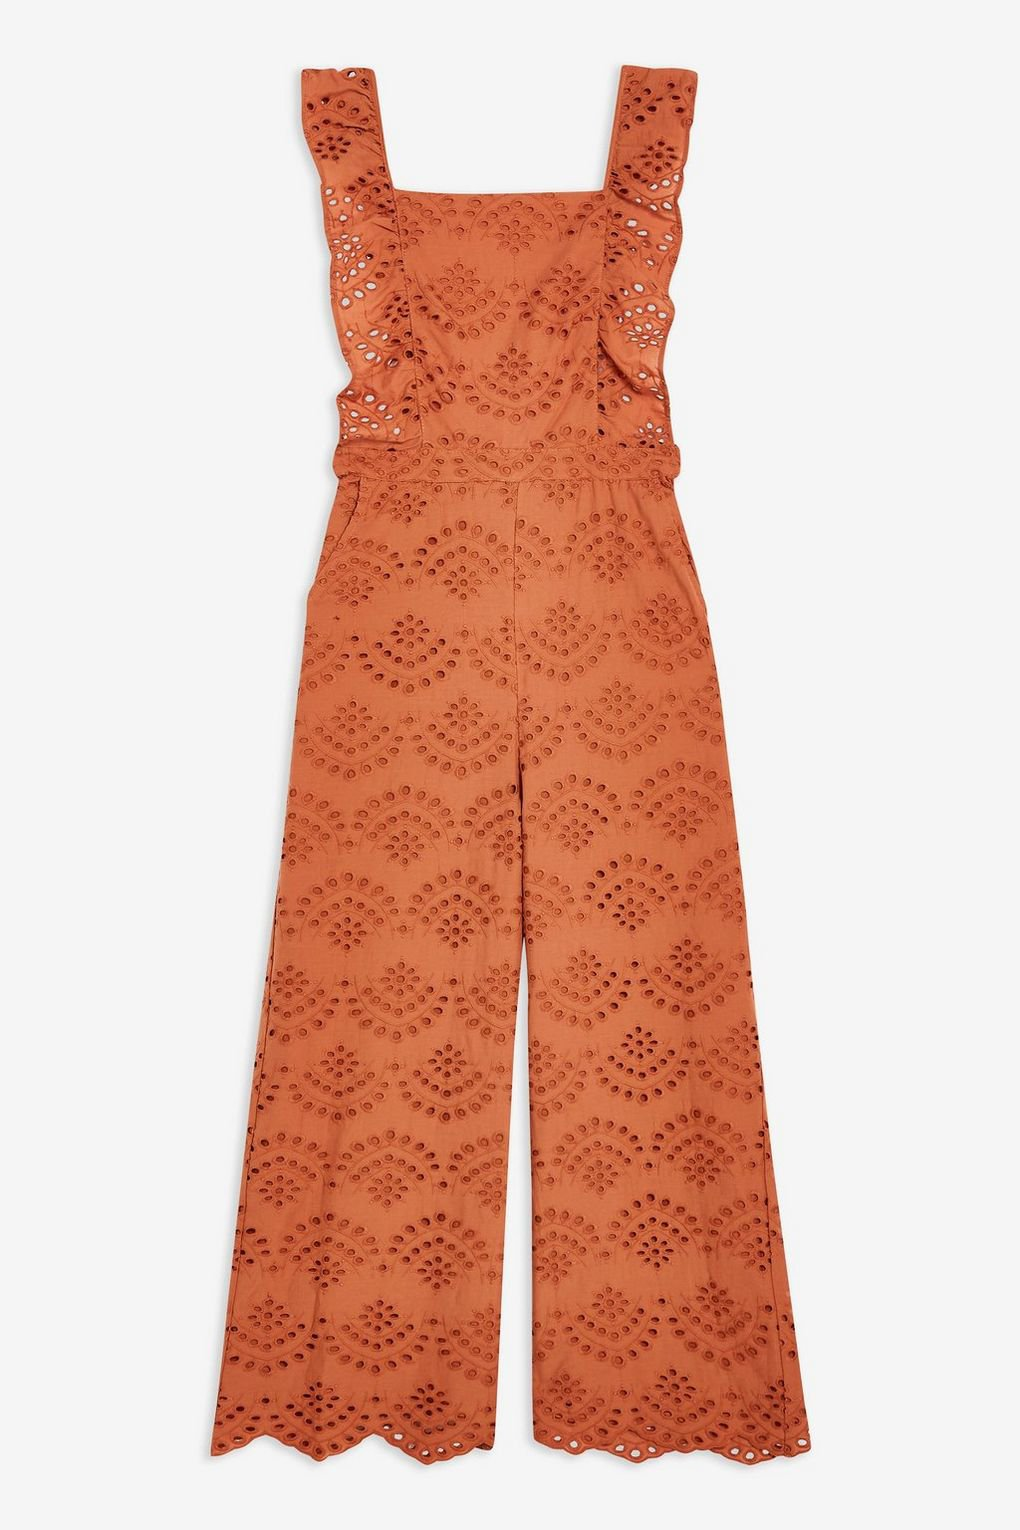 Broderie Jumpsuit - Rompers & Jumpsuits - Clothing - Topshop USA